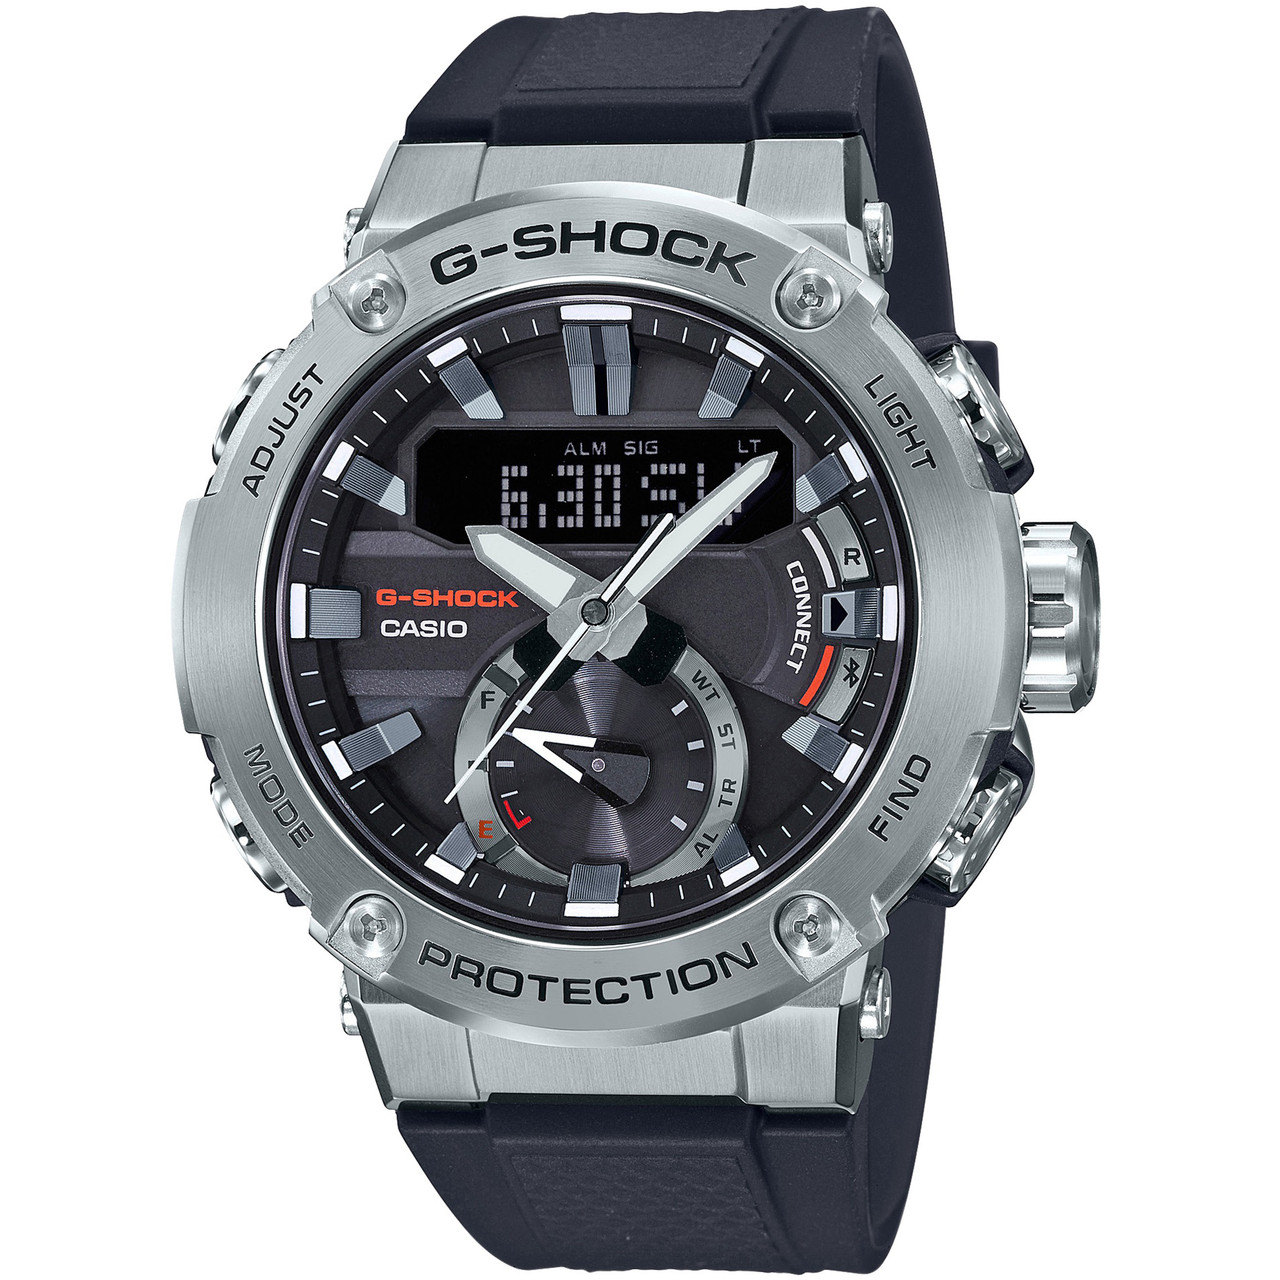 8a171be0ca Casio G-Shock Steel Bluetooth Solar Strap Watch GST-B200-1AER |  WatchO™